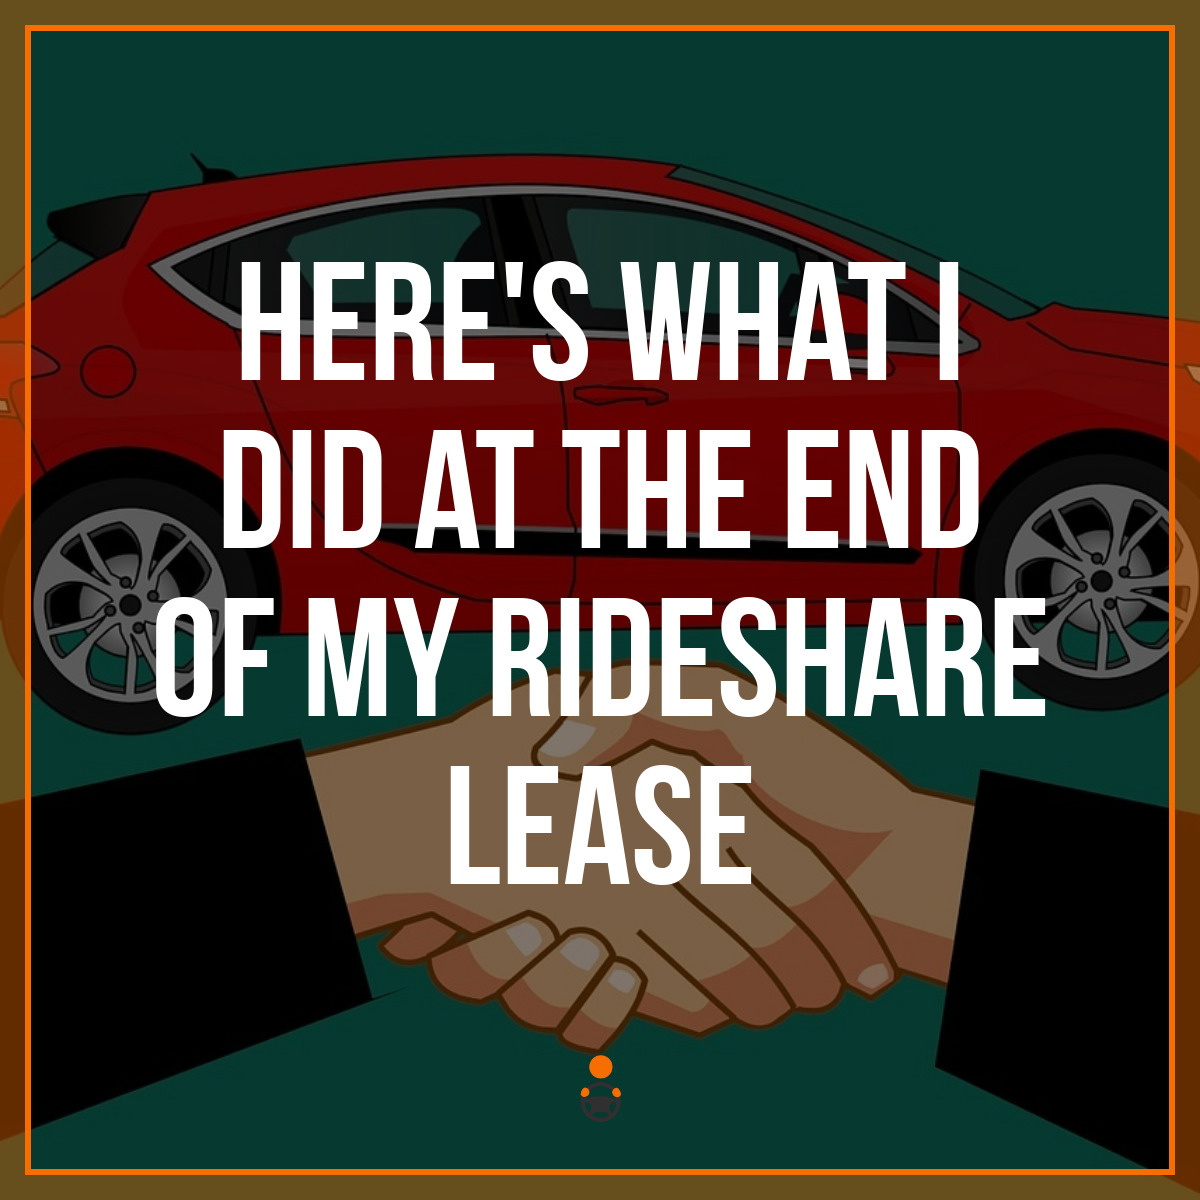 Here's What I Did at the End of My Rideshare Lease